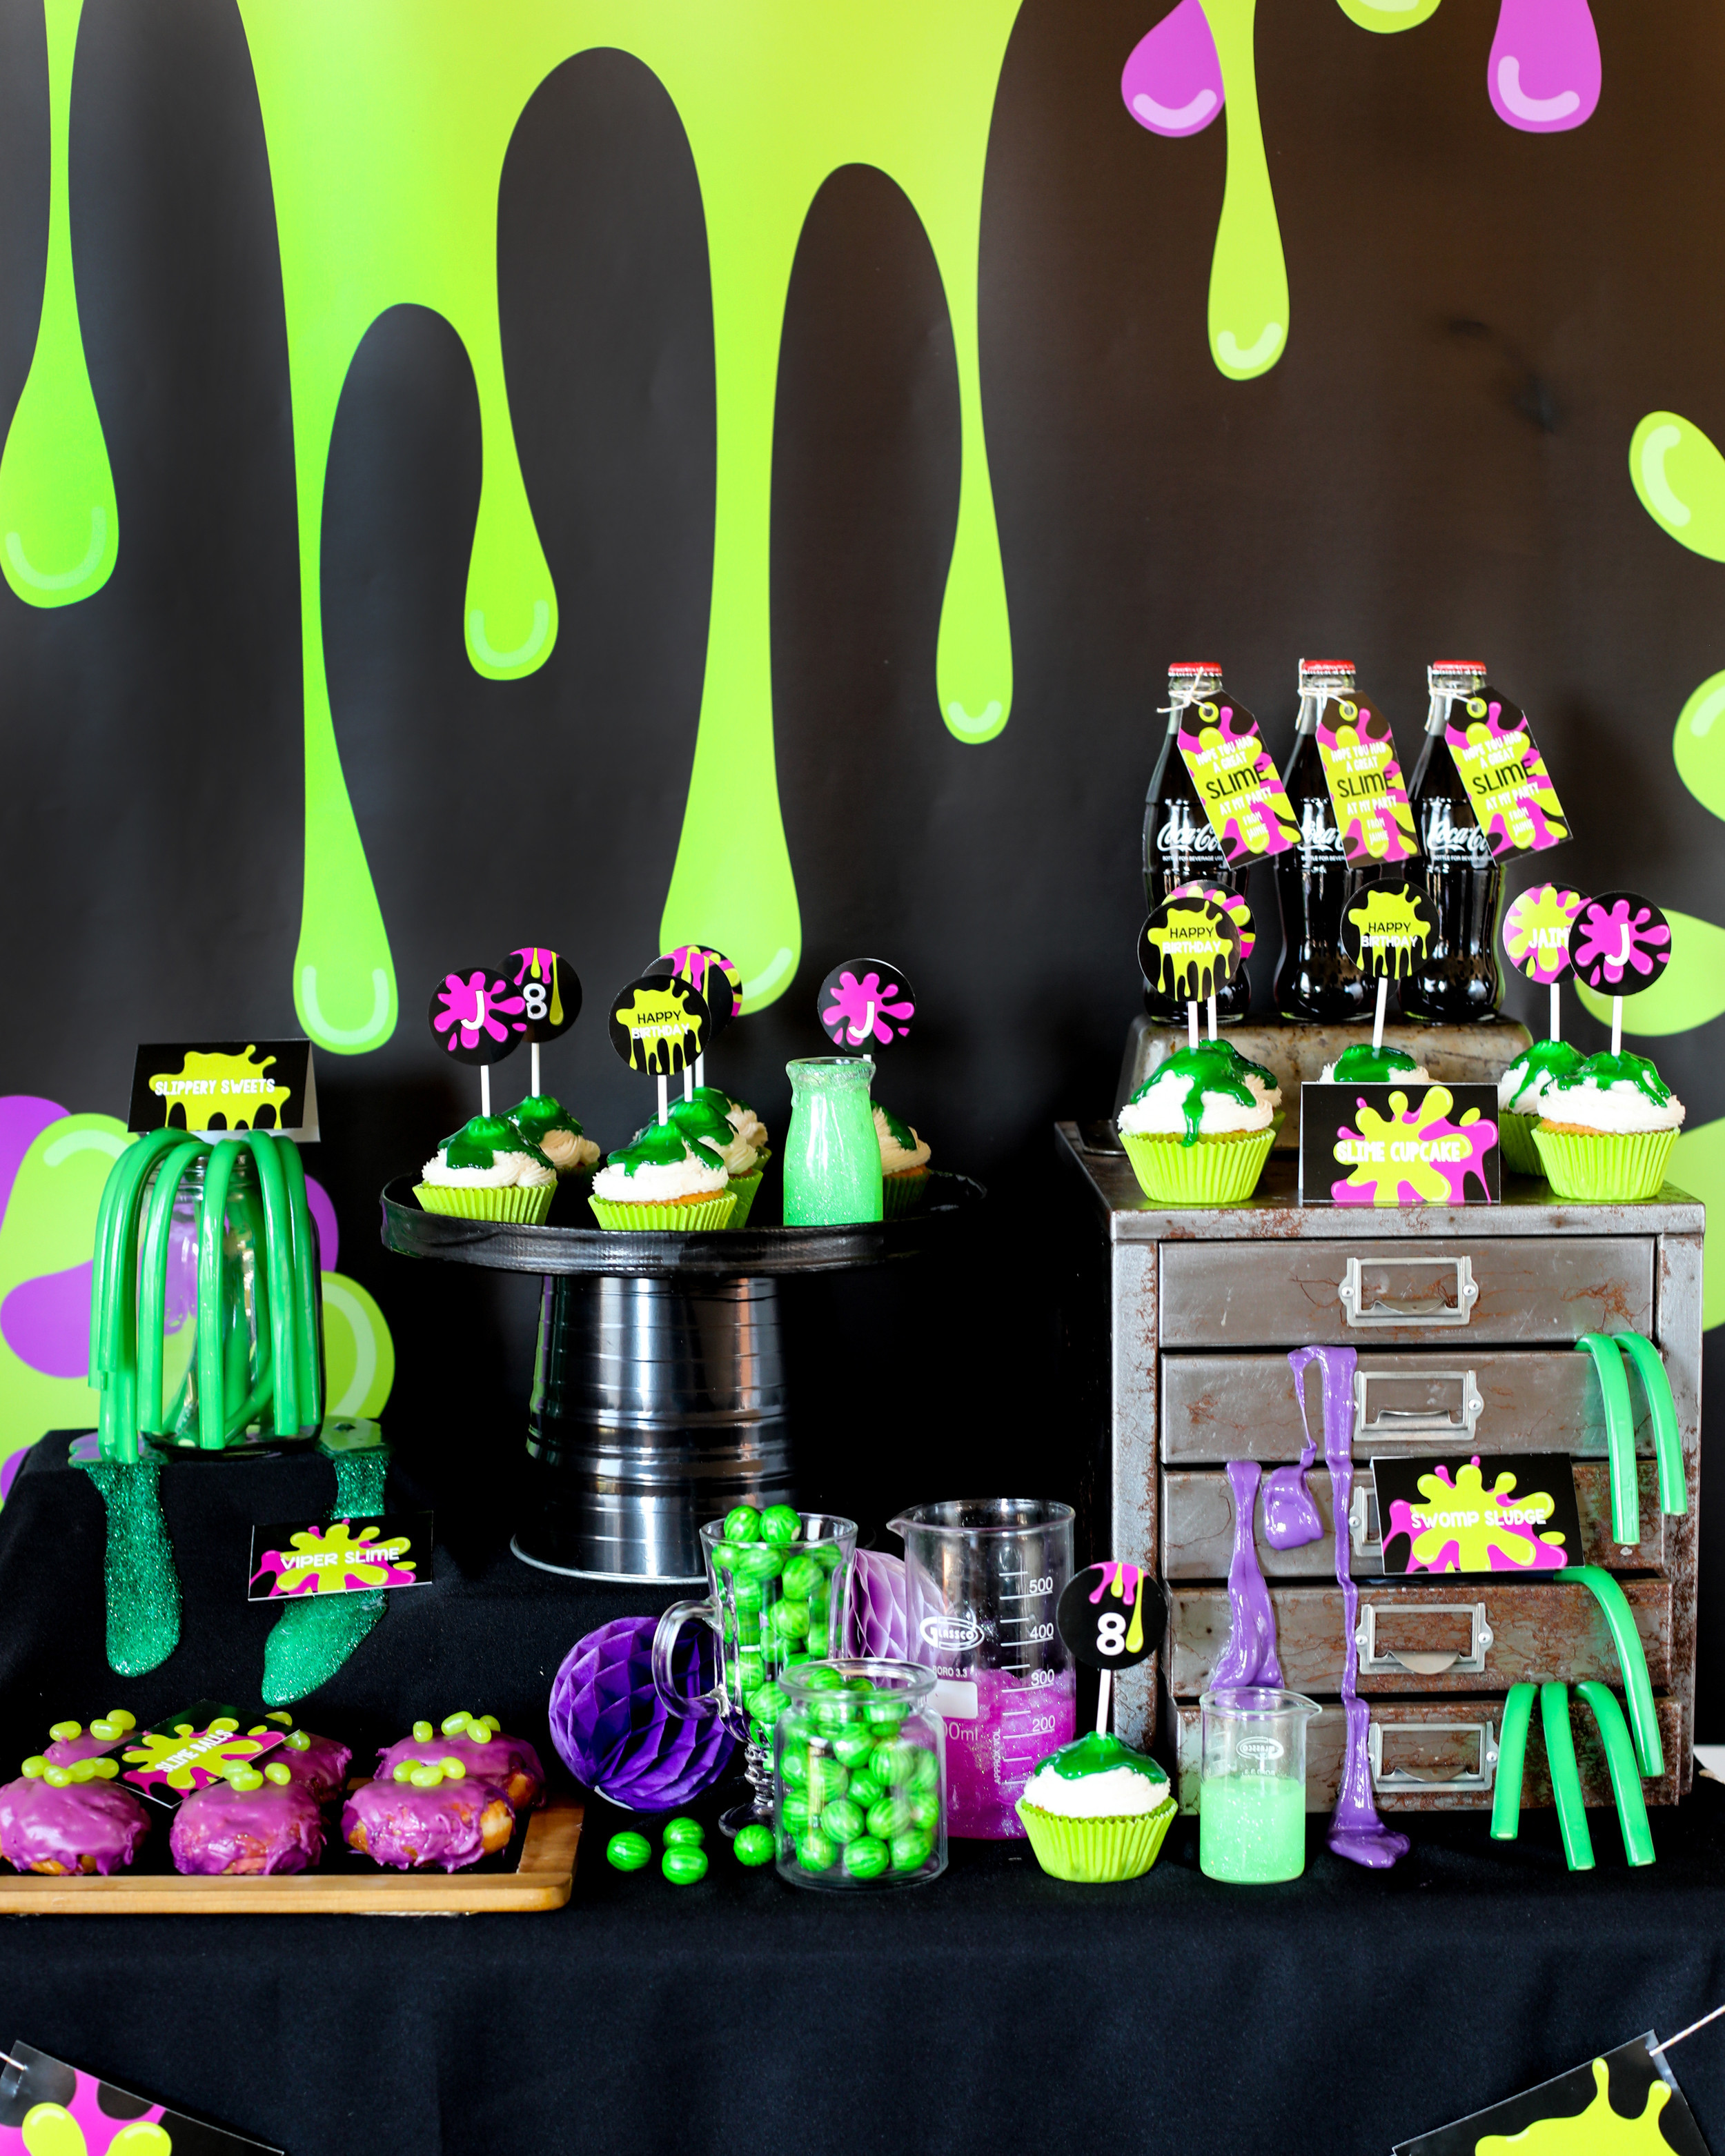 Slime Birthday Party Ideas  How to Throw an Epic Slime Party Sunshine Parties